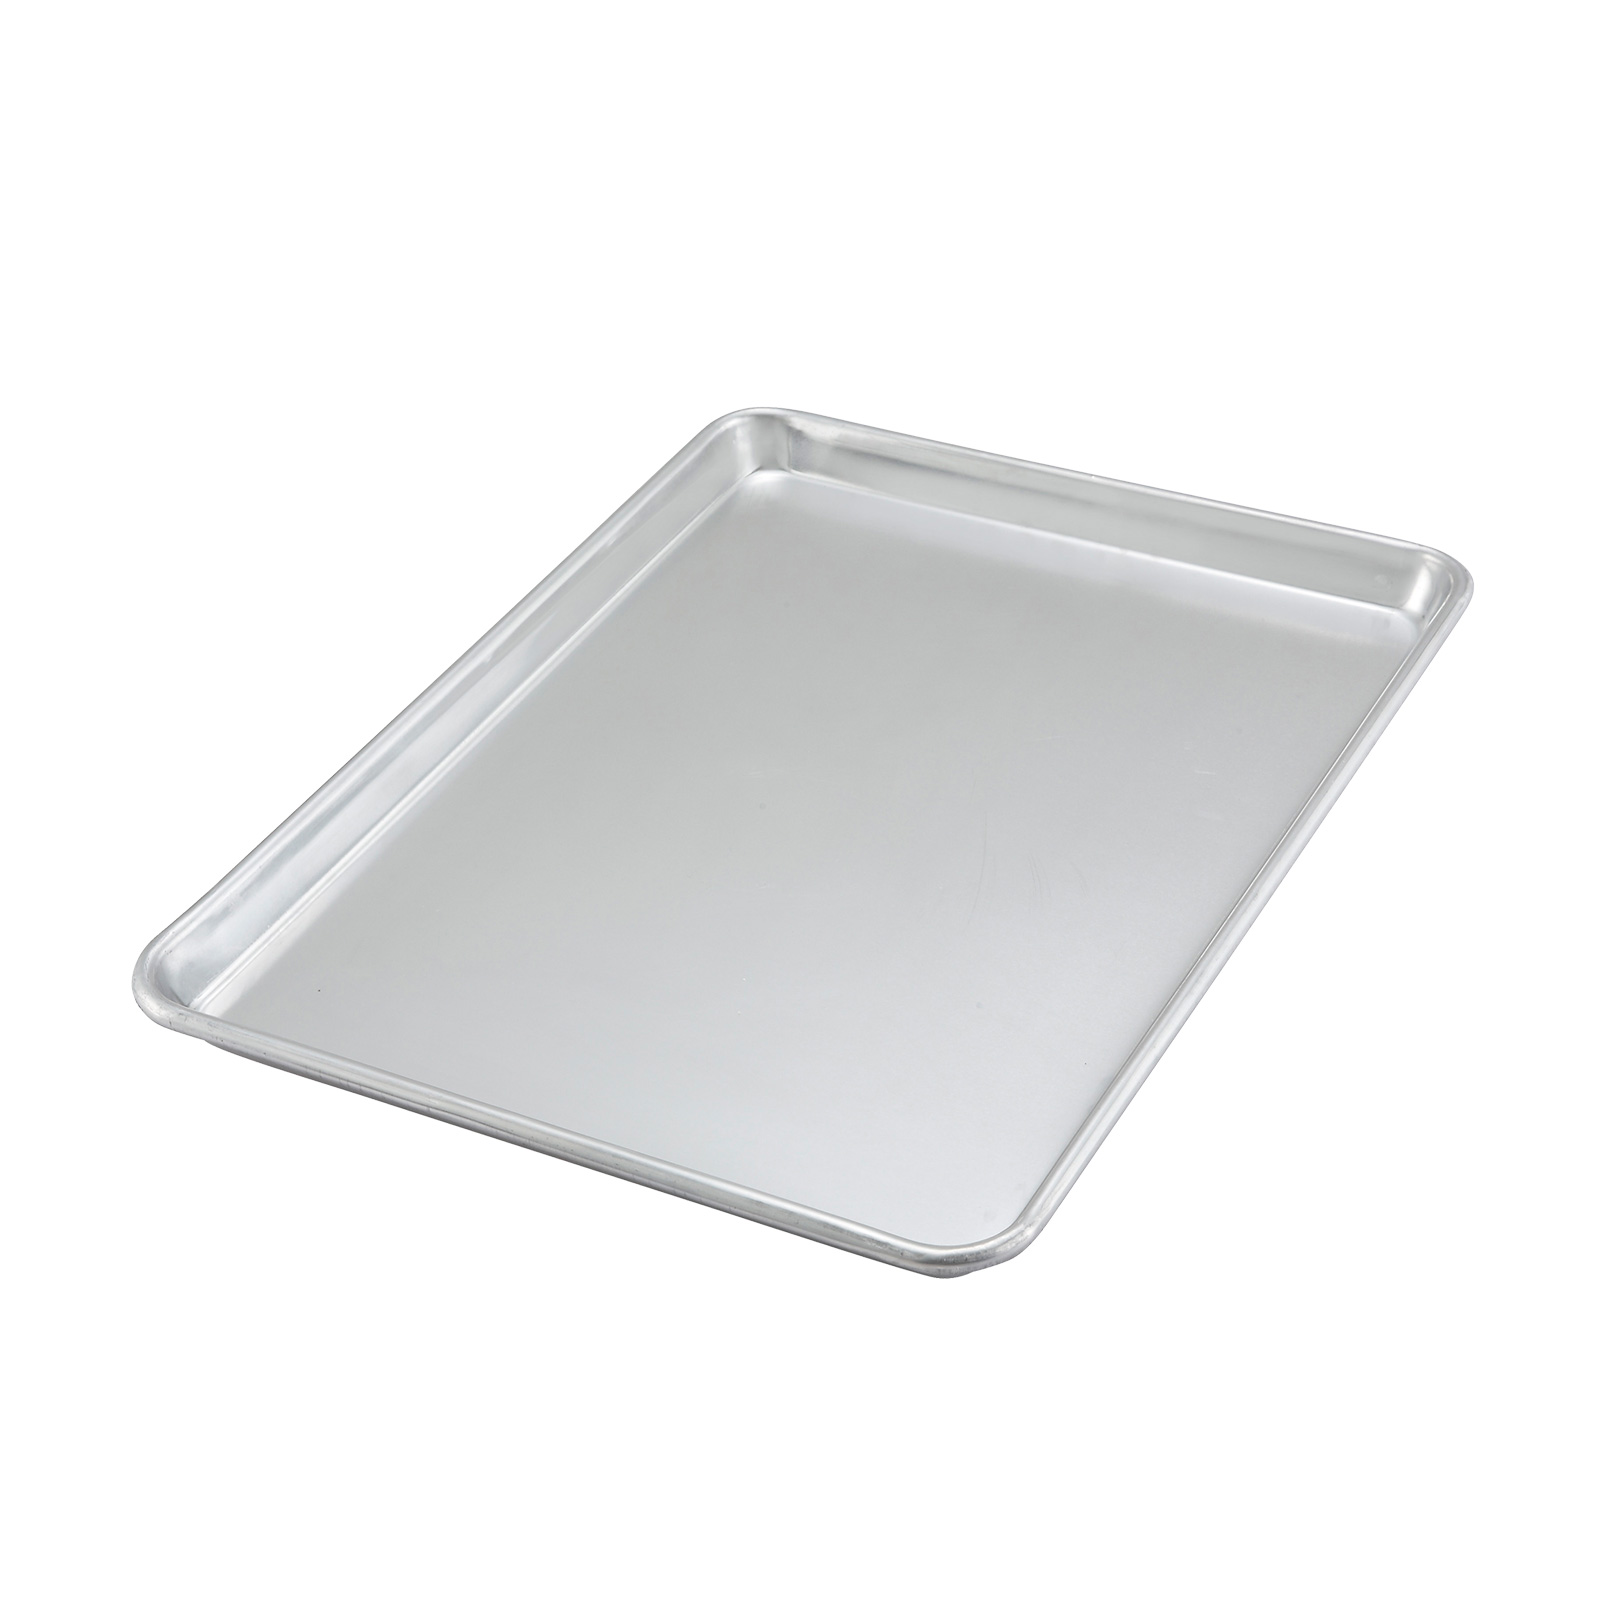 Winco ALXP-1318 bun / sheet pan